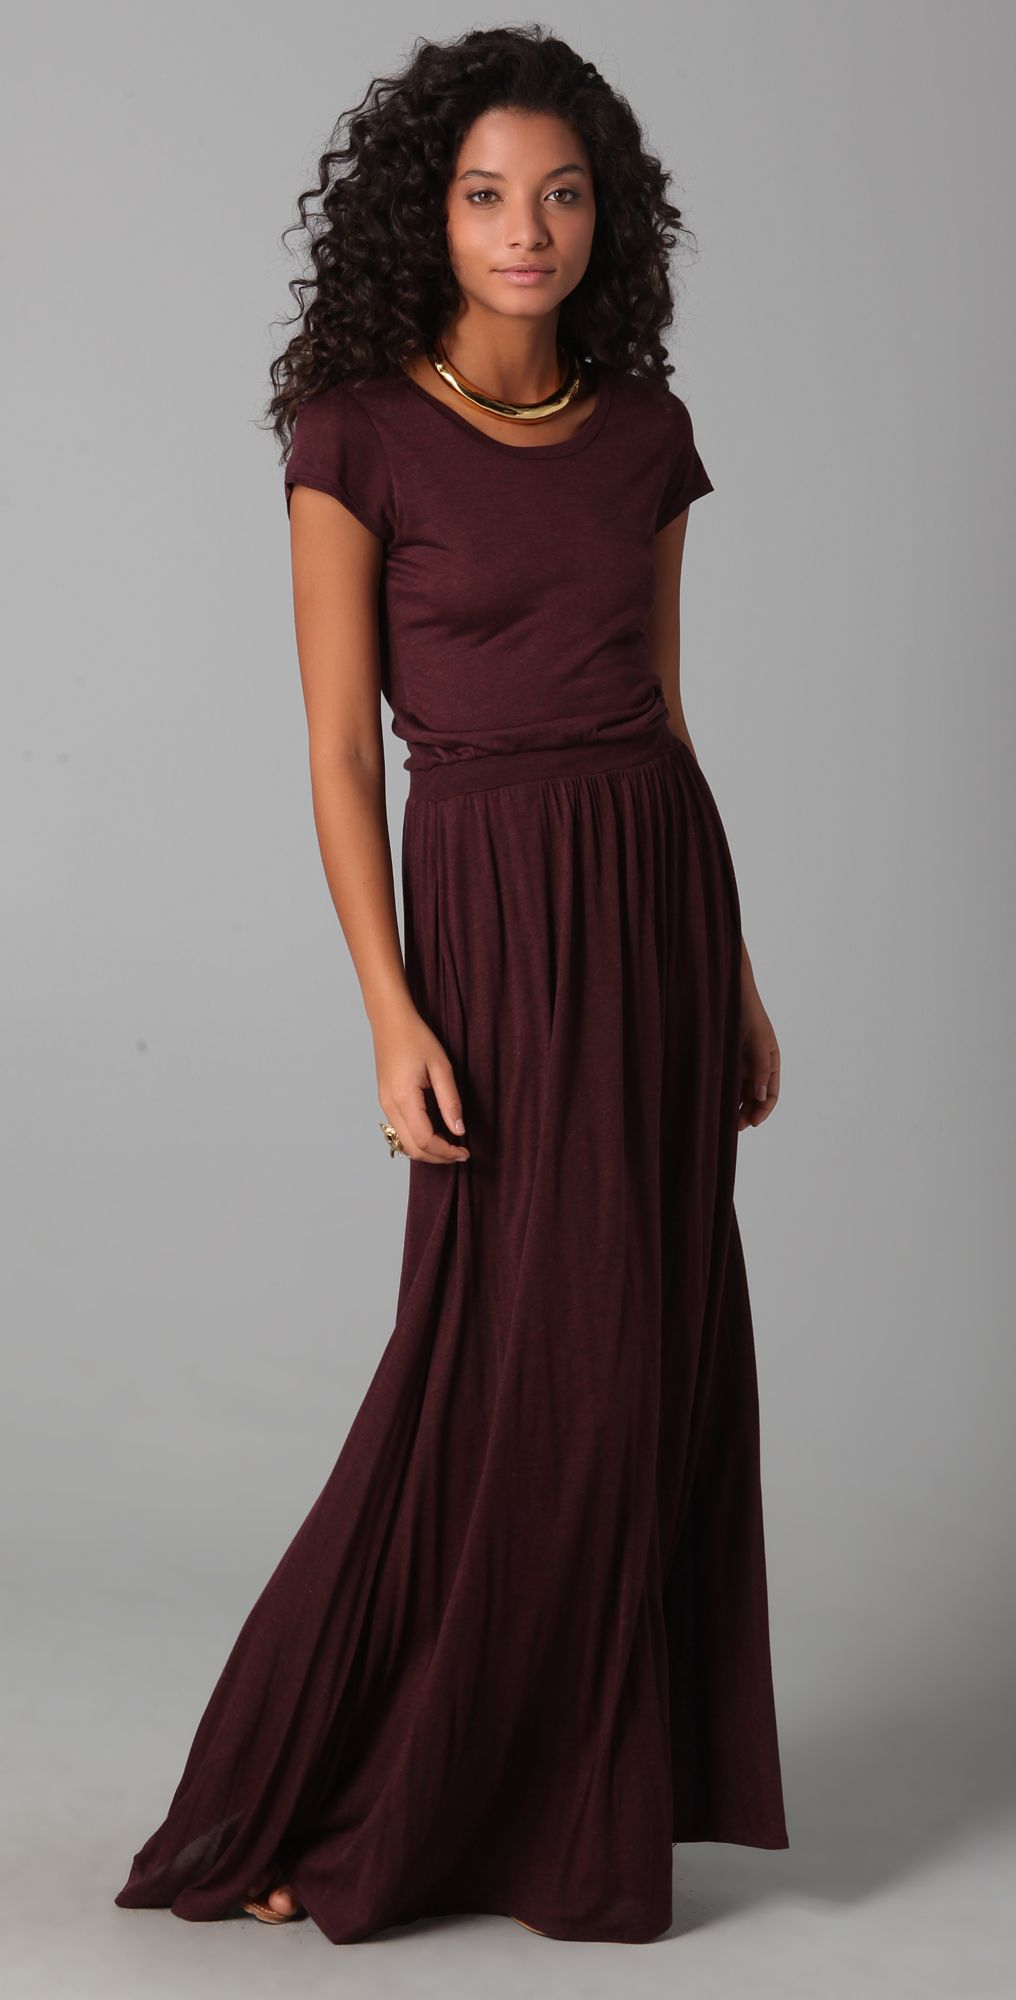 Maxi tee dress retail therapy clothes and summer